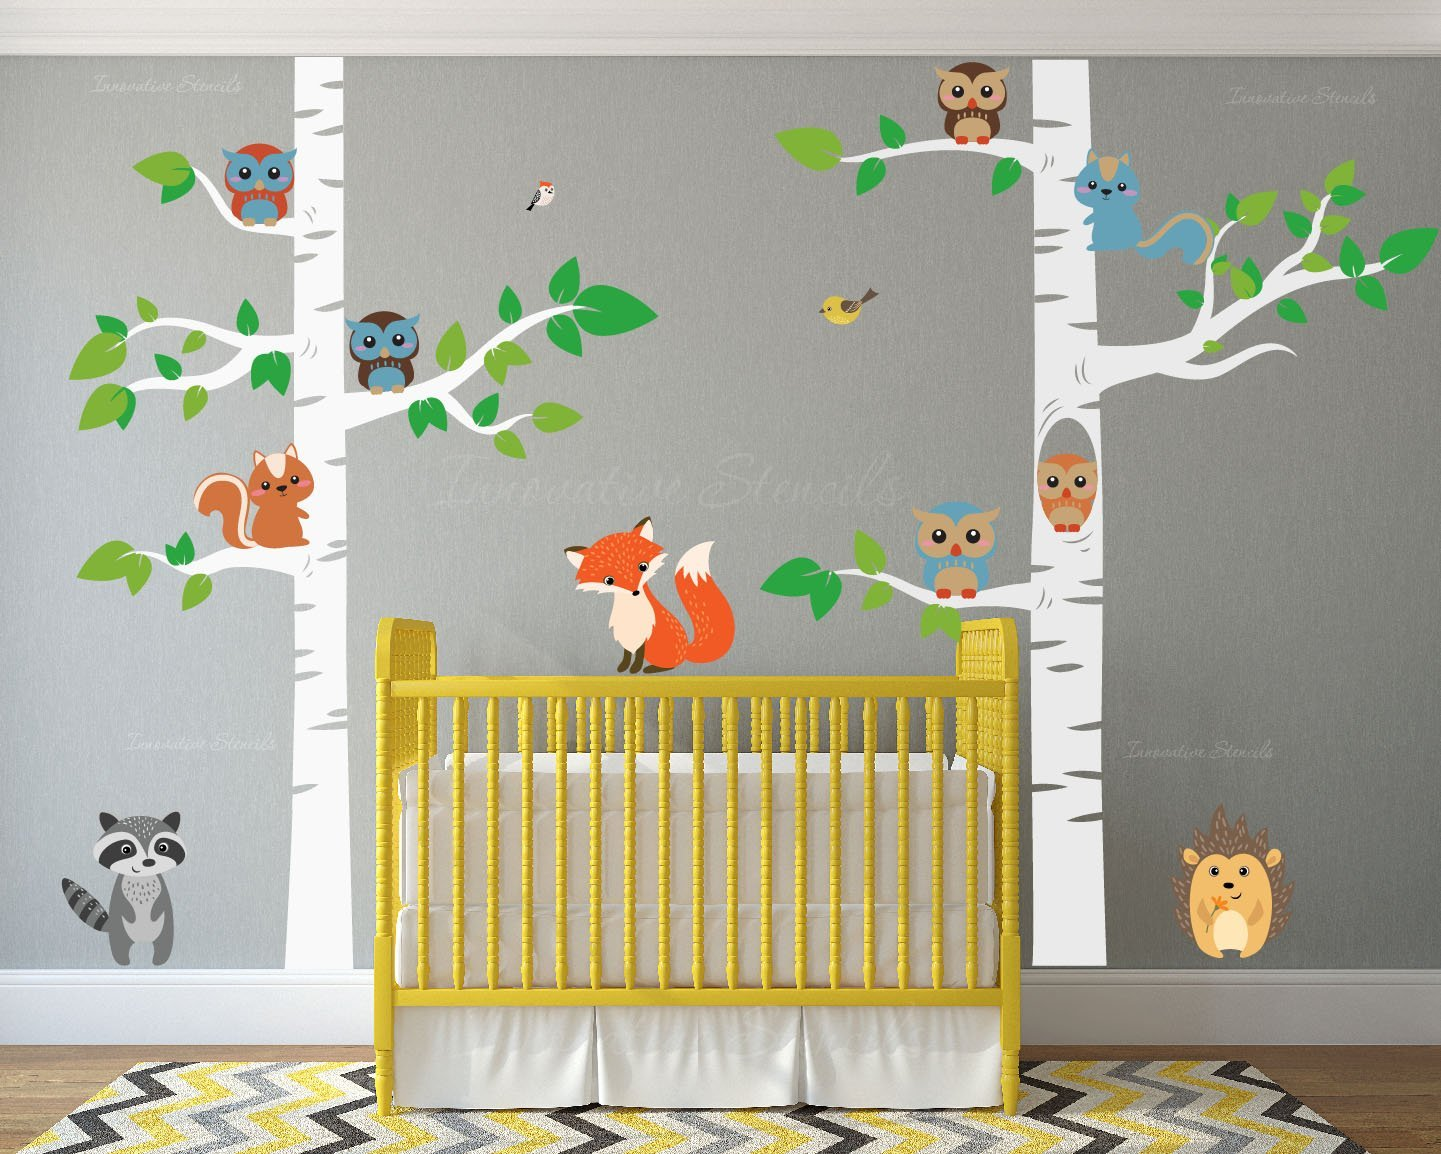 Birch Tree Wall Decal Forest with Owl Birds Squirrels Fox Porcupine Racoon Vinyl Sticker Woodland Children Decor Removable #1327 (108'' (9ft) Tall, White Trees) by Innovative Stencils